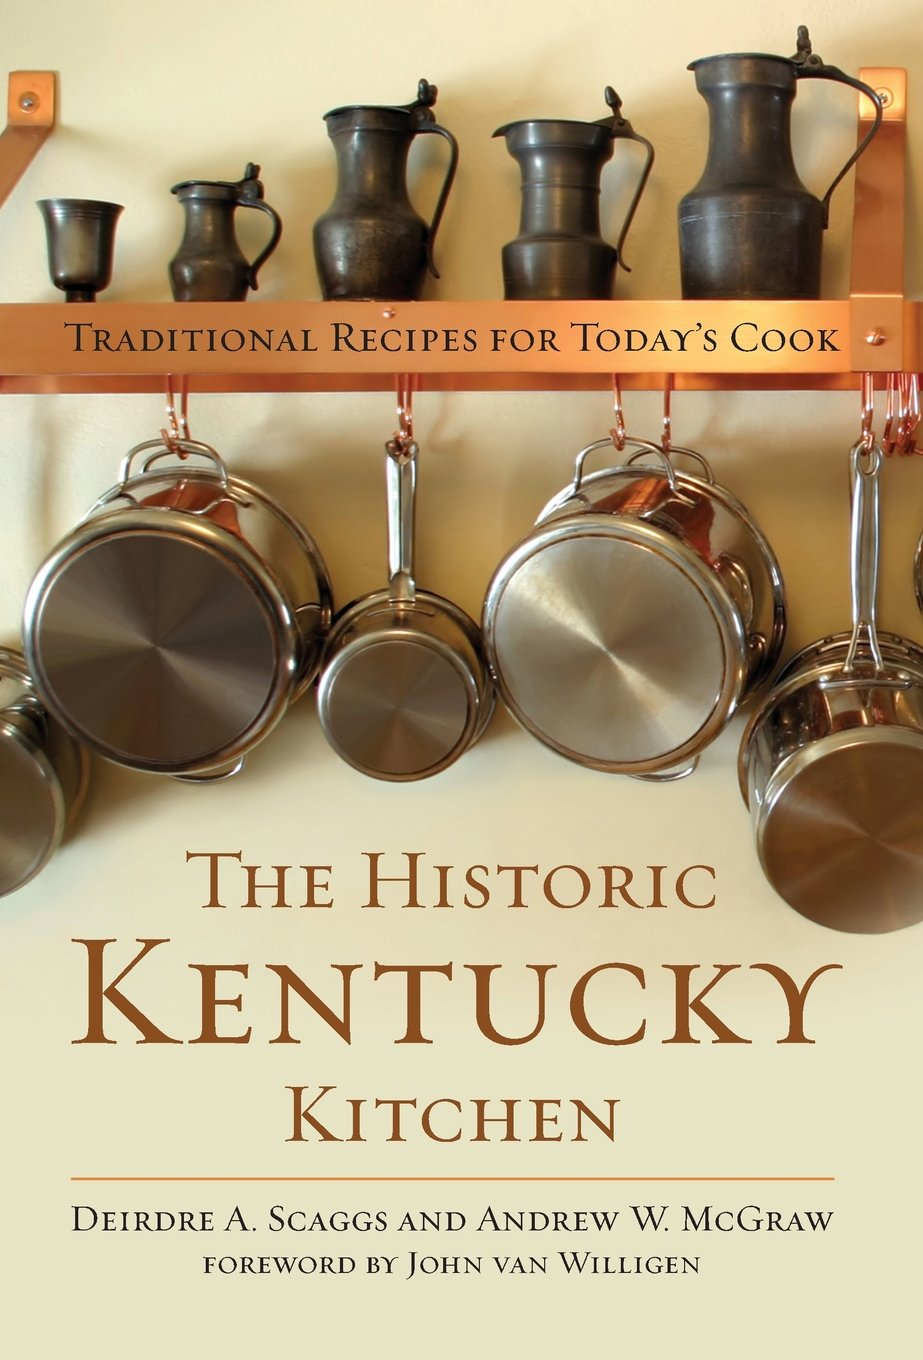 The Historic Kentucky Kitchen: Traditional Recipes for Today's Cook PDF